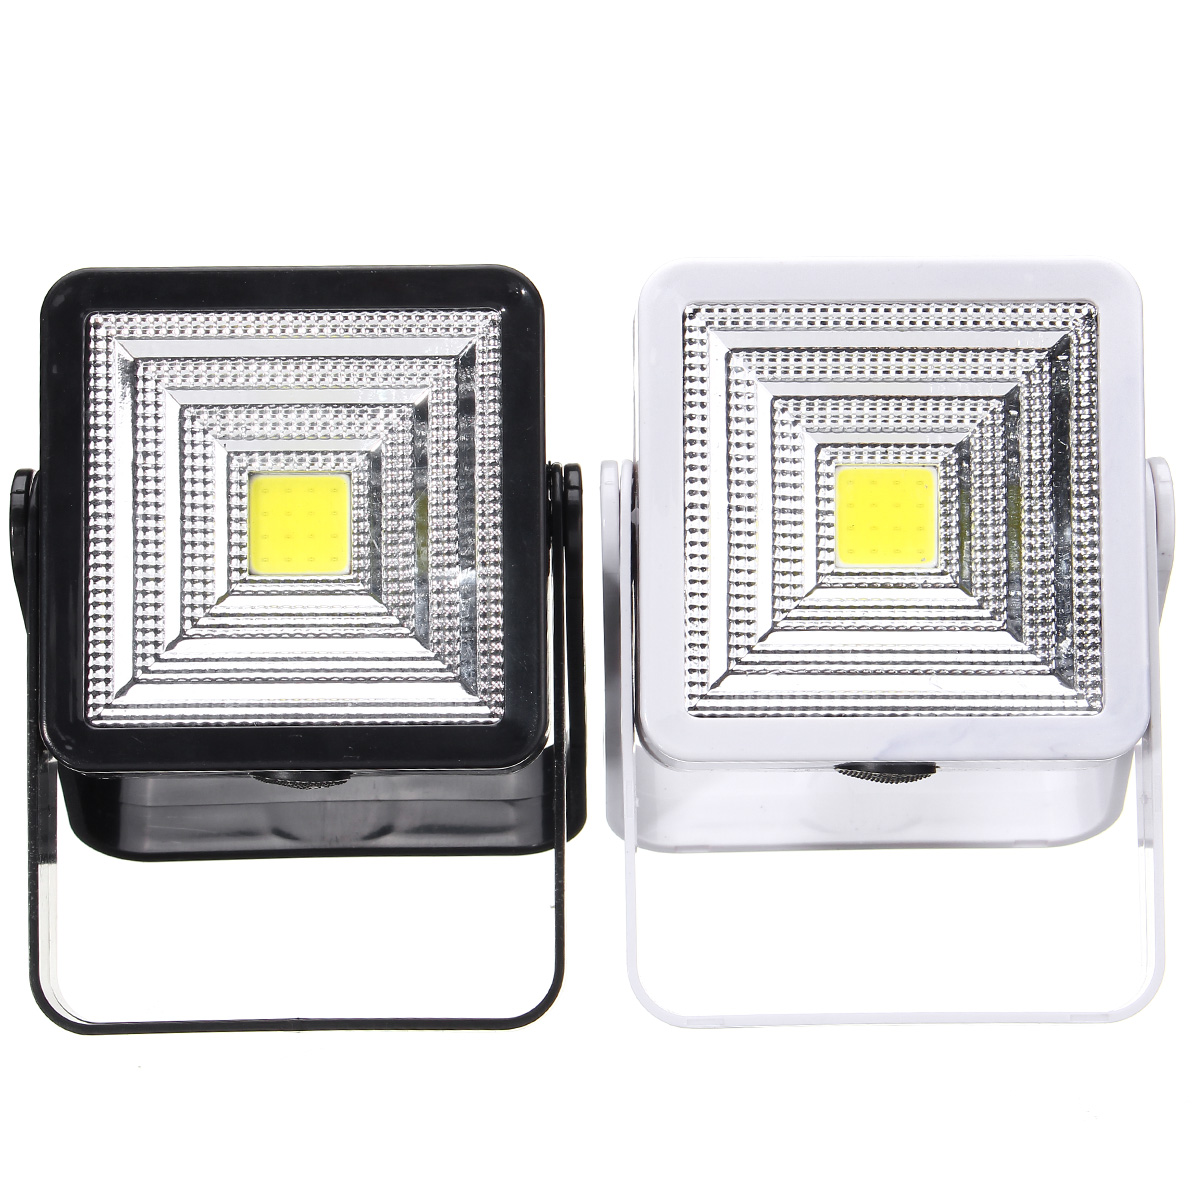 Portable Solar Powered LED 2W COB Rechargeable Bulb Light Outdoor Camping Yard Hiking Lamp Lantern Solar Powered LED